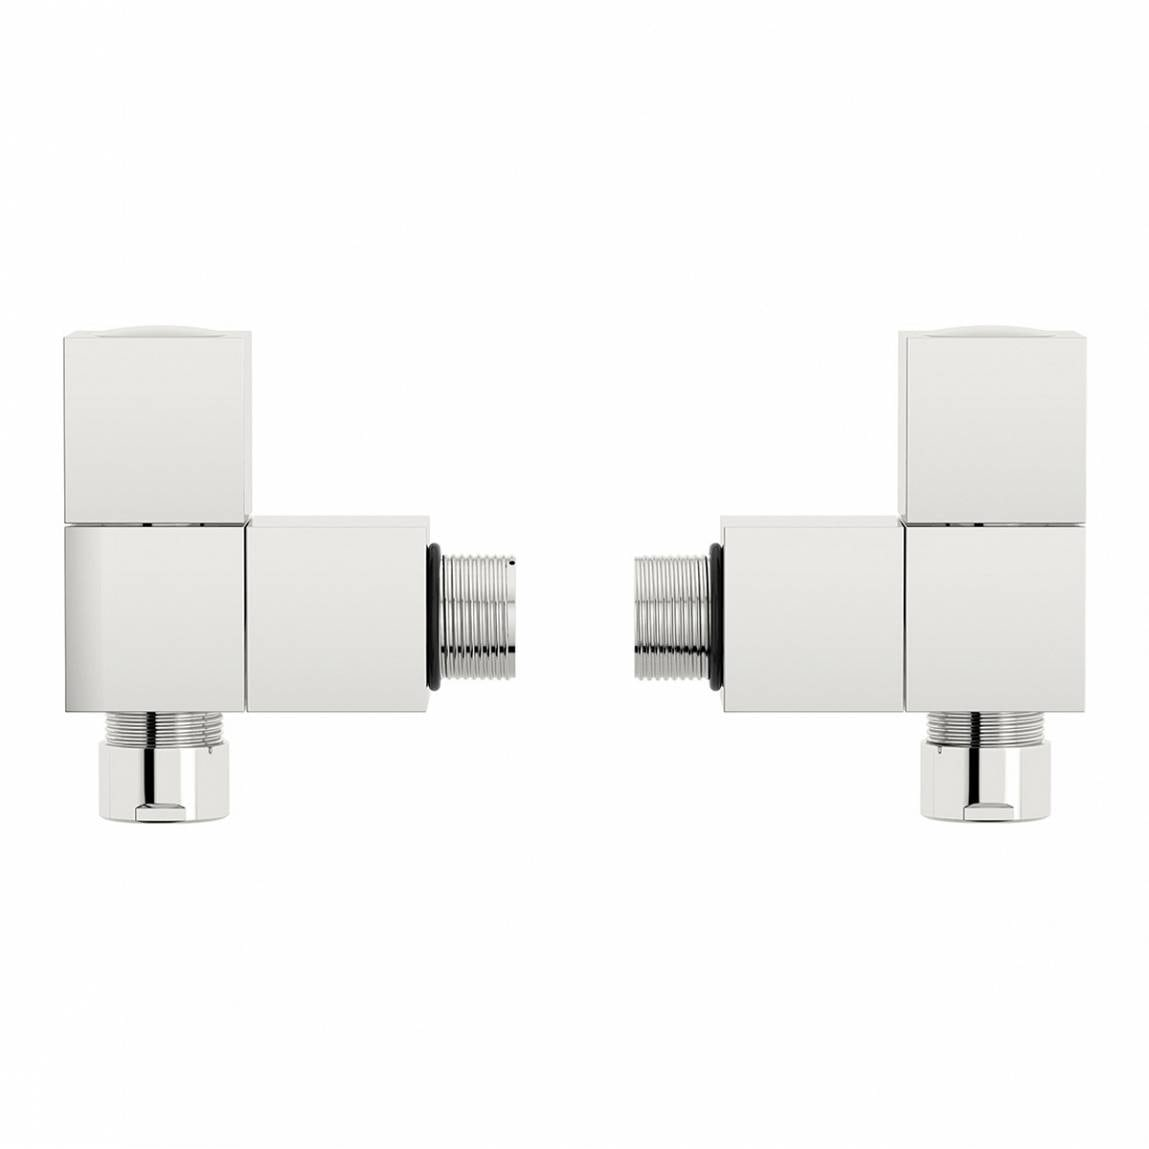 Square Angled Radiator Valves